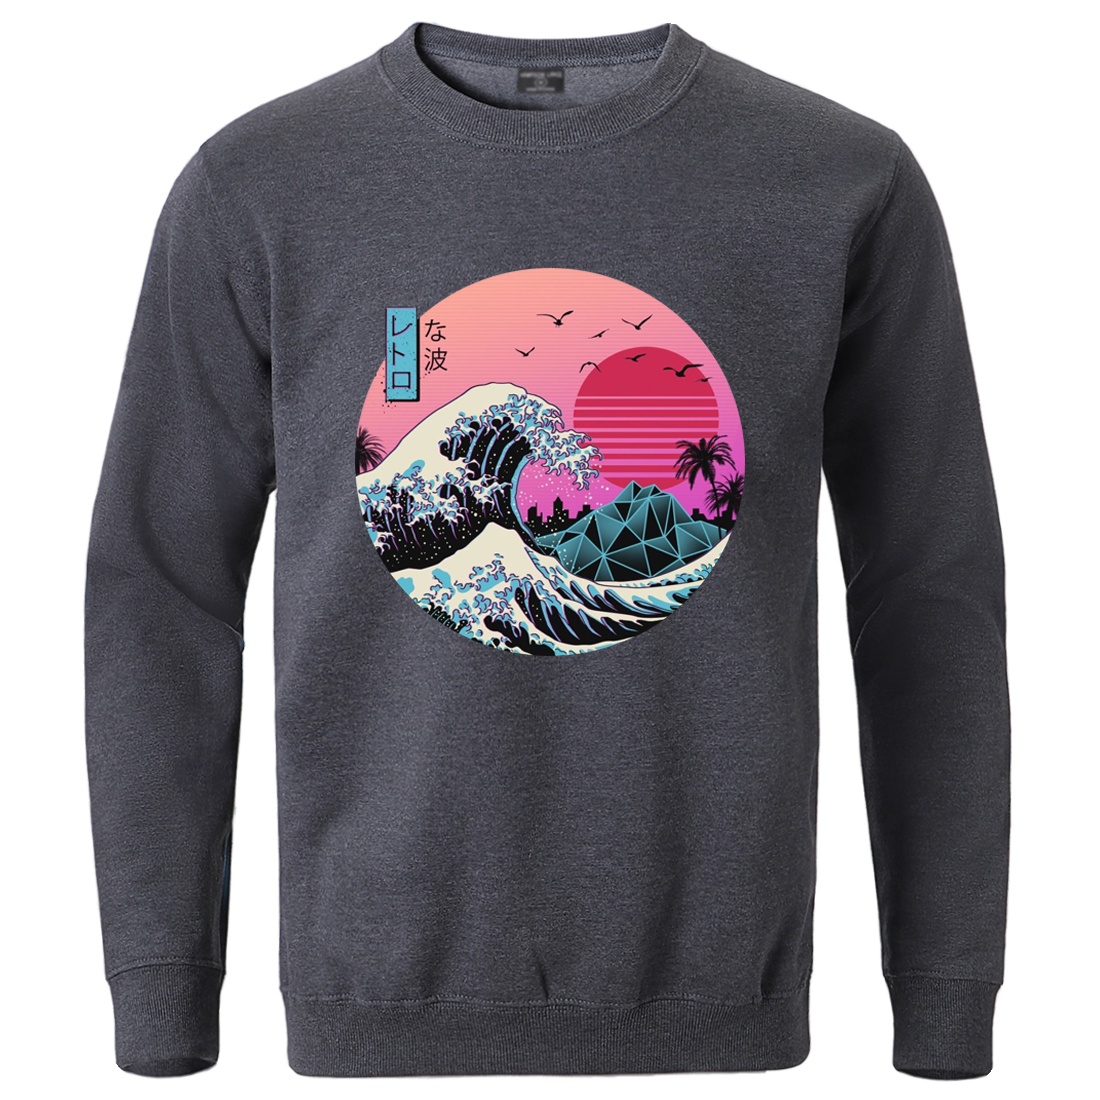 The Great Retro Wave Japan Anime Vaporwave Kanagawa Sweatshirts Men Crewneck Pullover 2020 Male Casual Fit Loose Tops Tracksuits